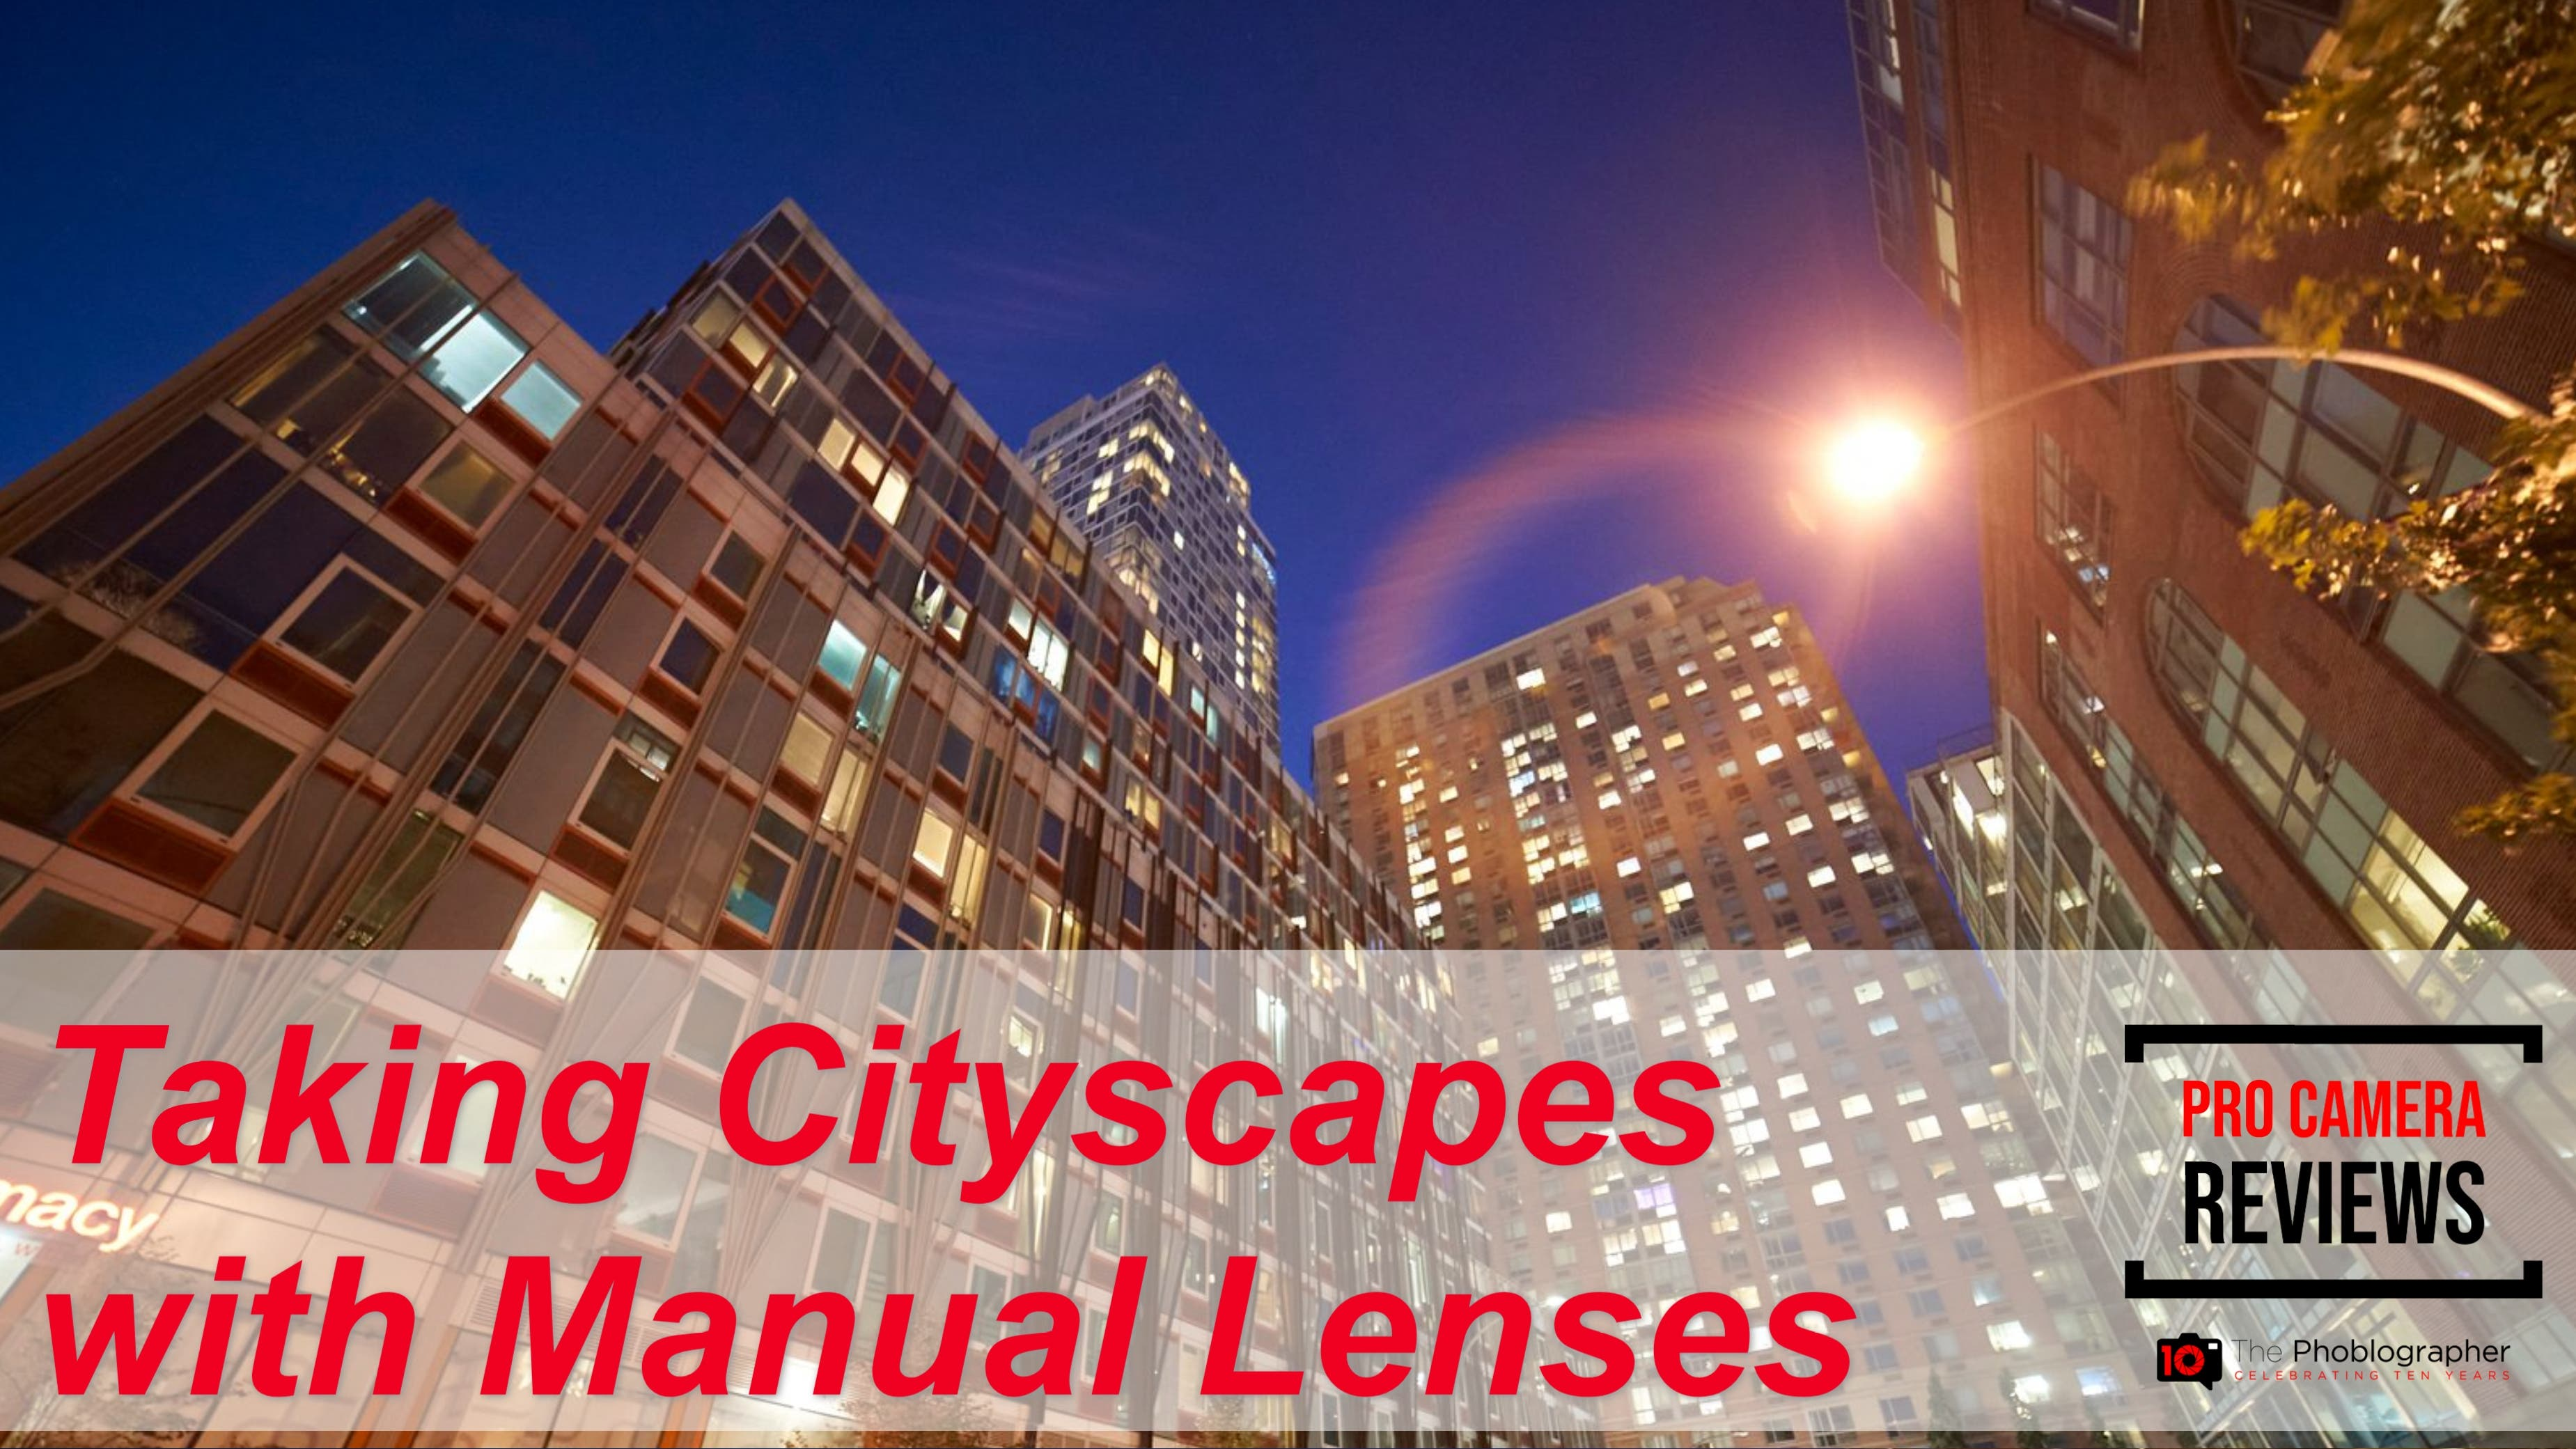 How Shooting Cityscapes with Manual Lenses Makes You Better